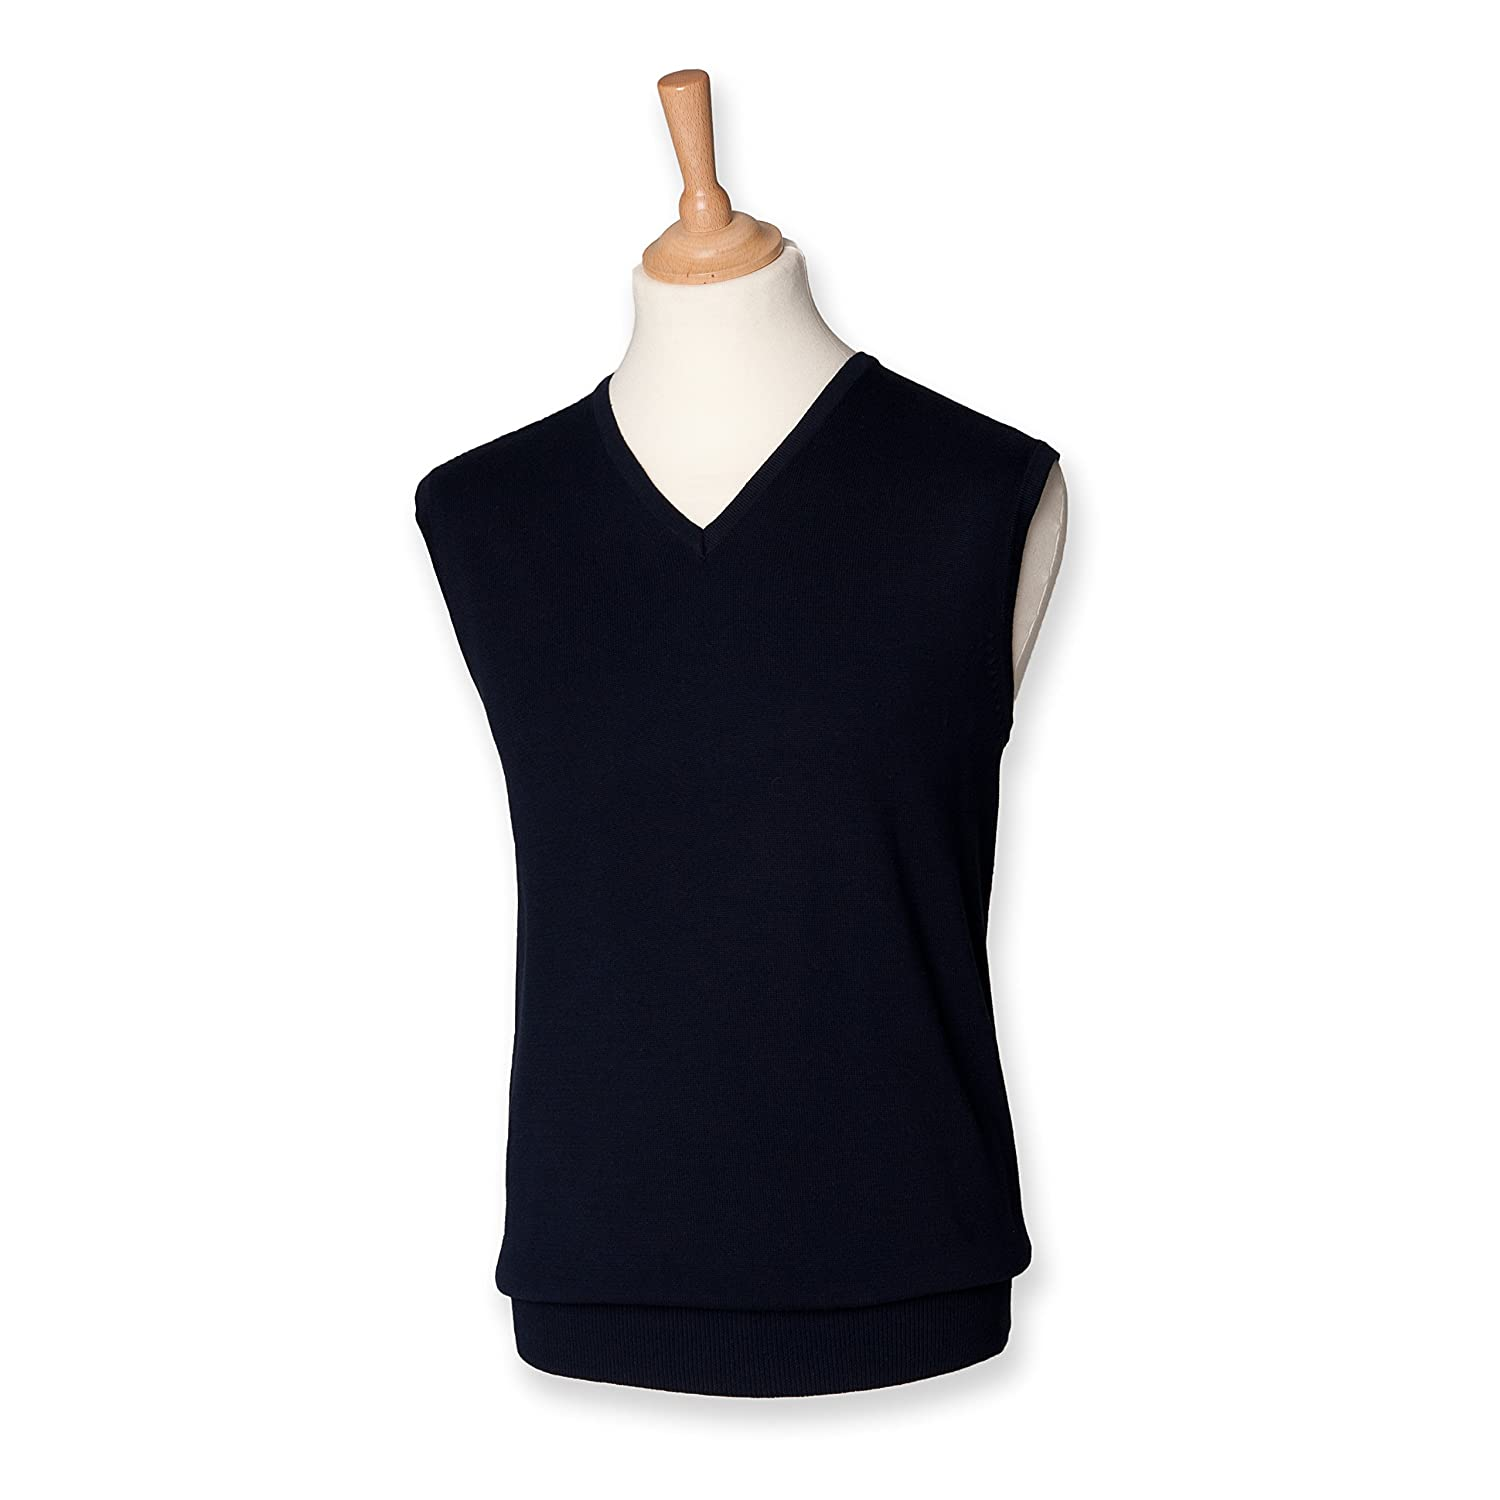 Henbury Men's Lightweight V Neck Sleeveless Sweater